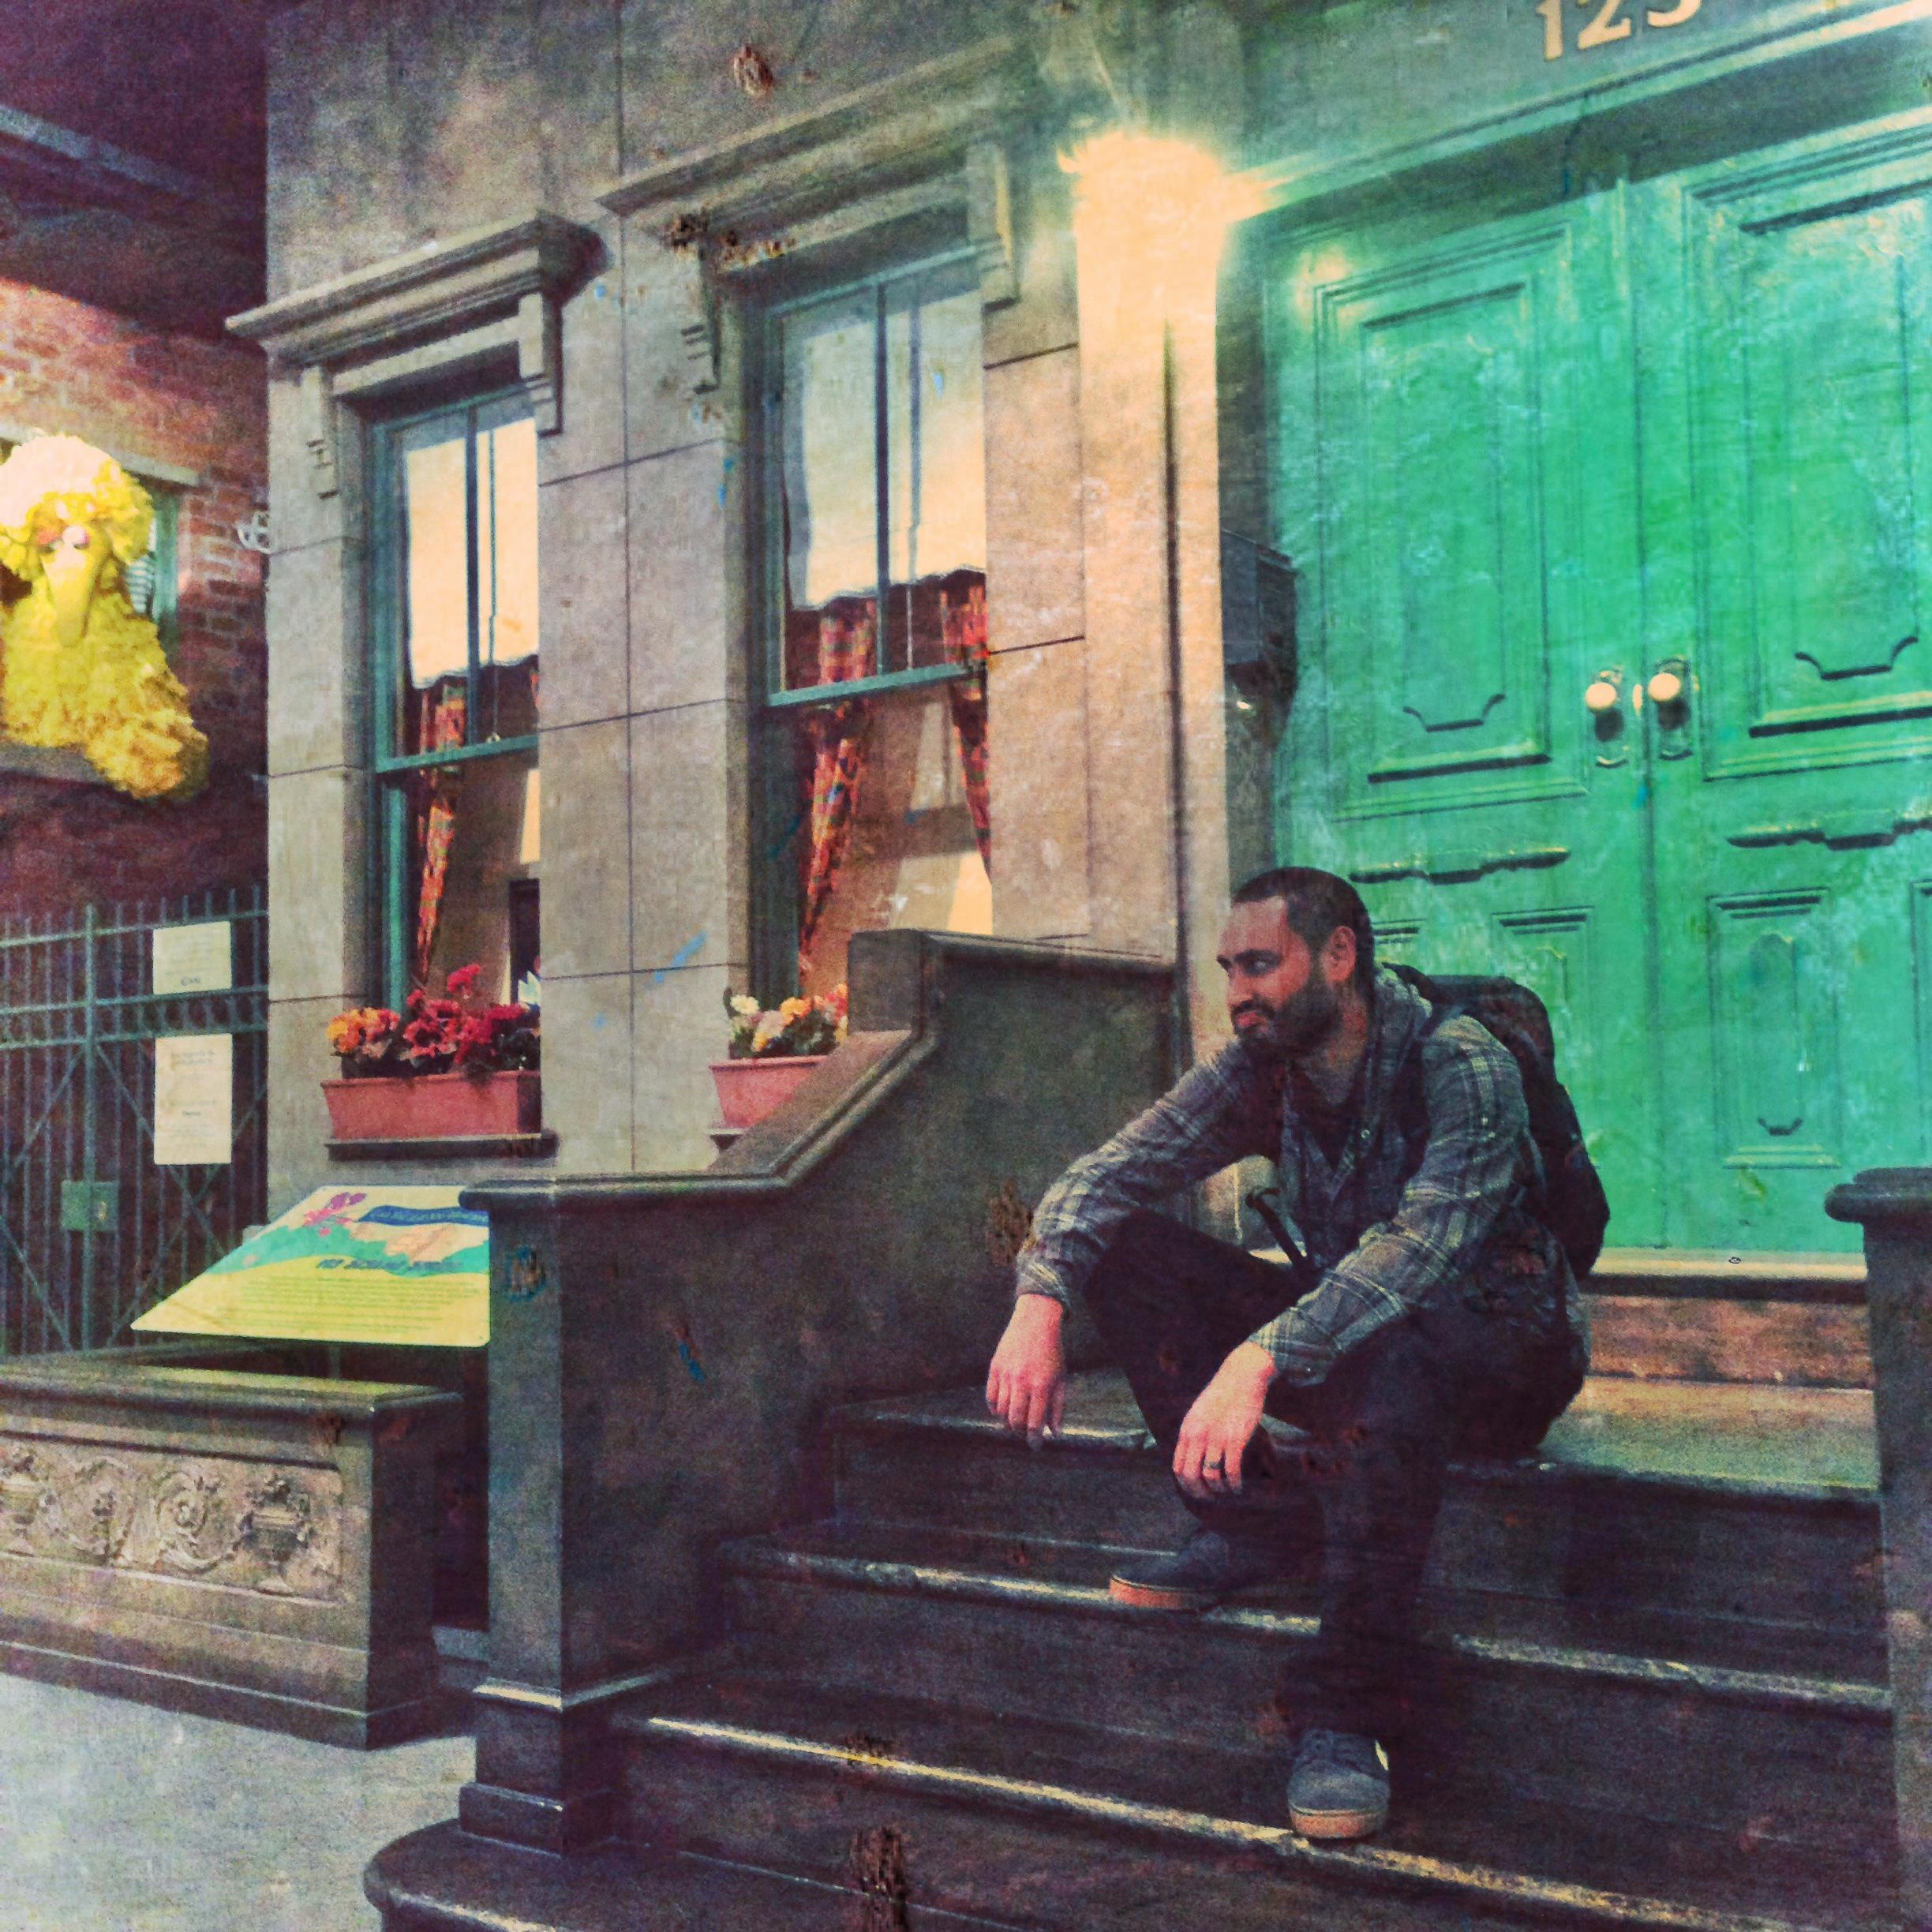 The National Museum of Play in Rochester NY has a recreation of the iconic Sesame St. set-piece. Jason is waiting for Big Bird.